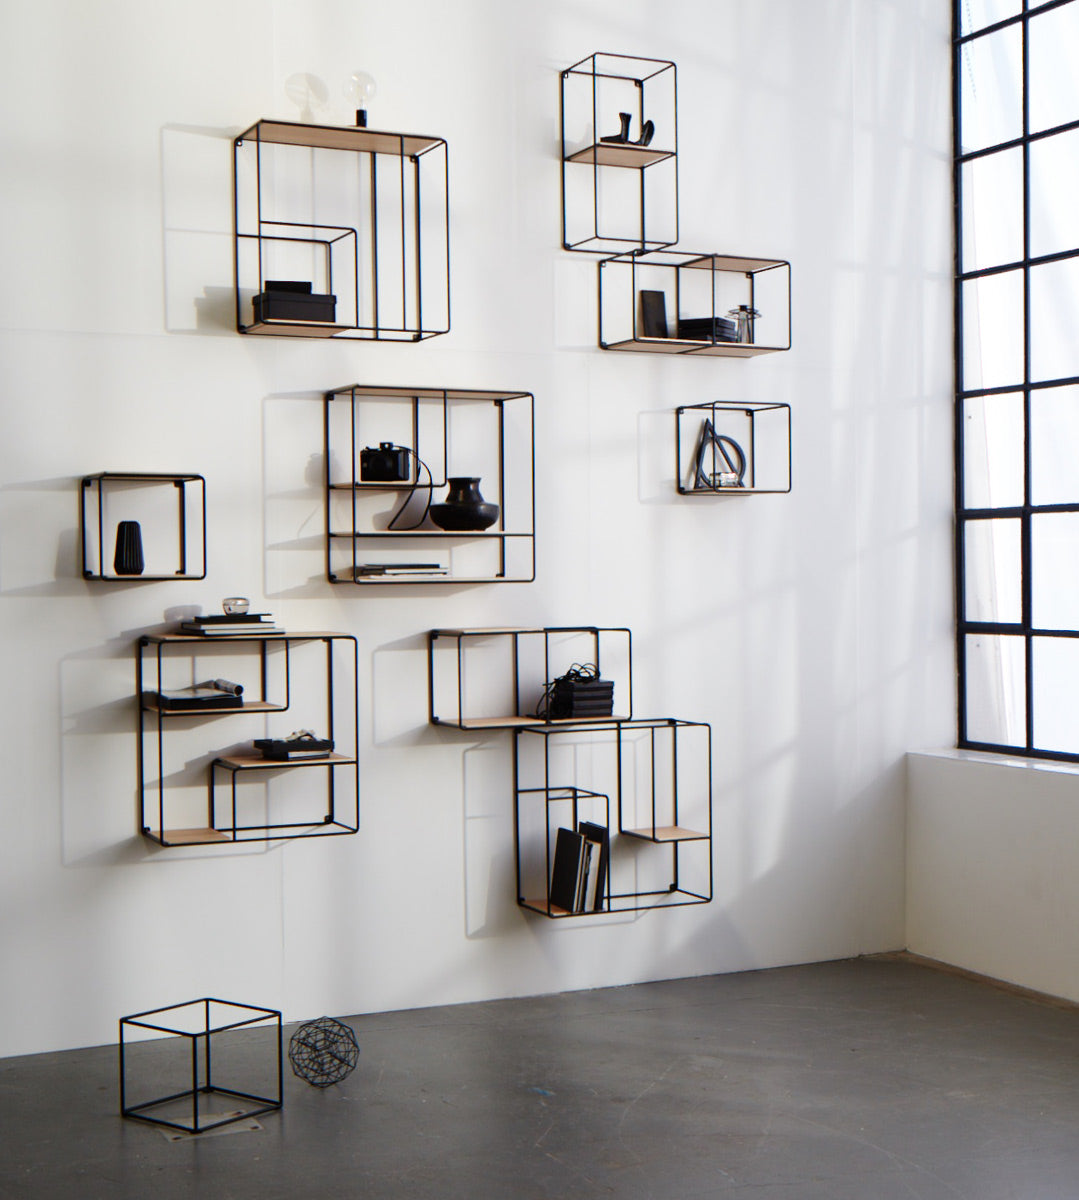 Anywhere 1 x 1 (1 Shelf) - Korridor - Do Shop